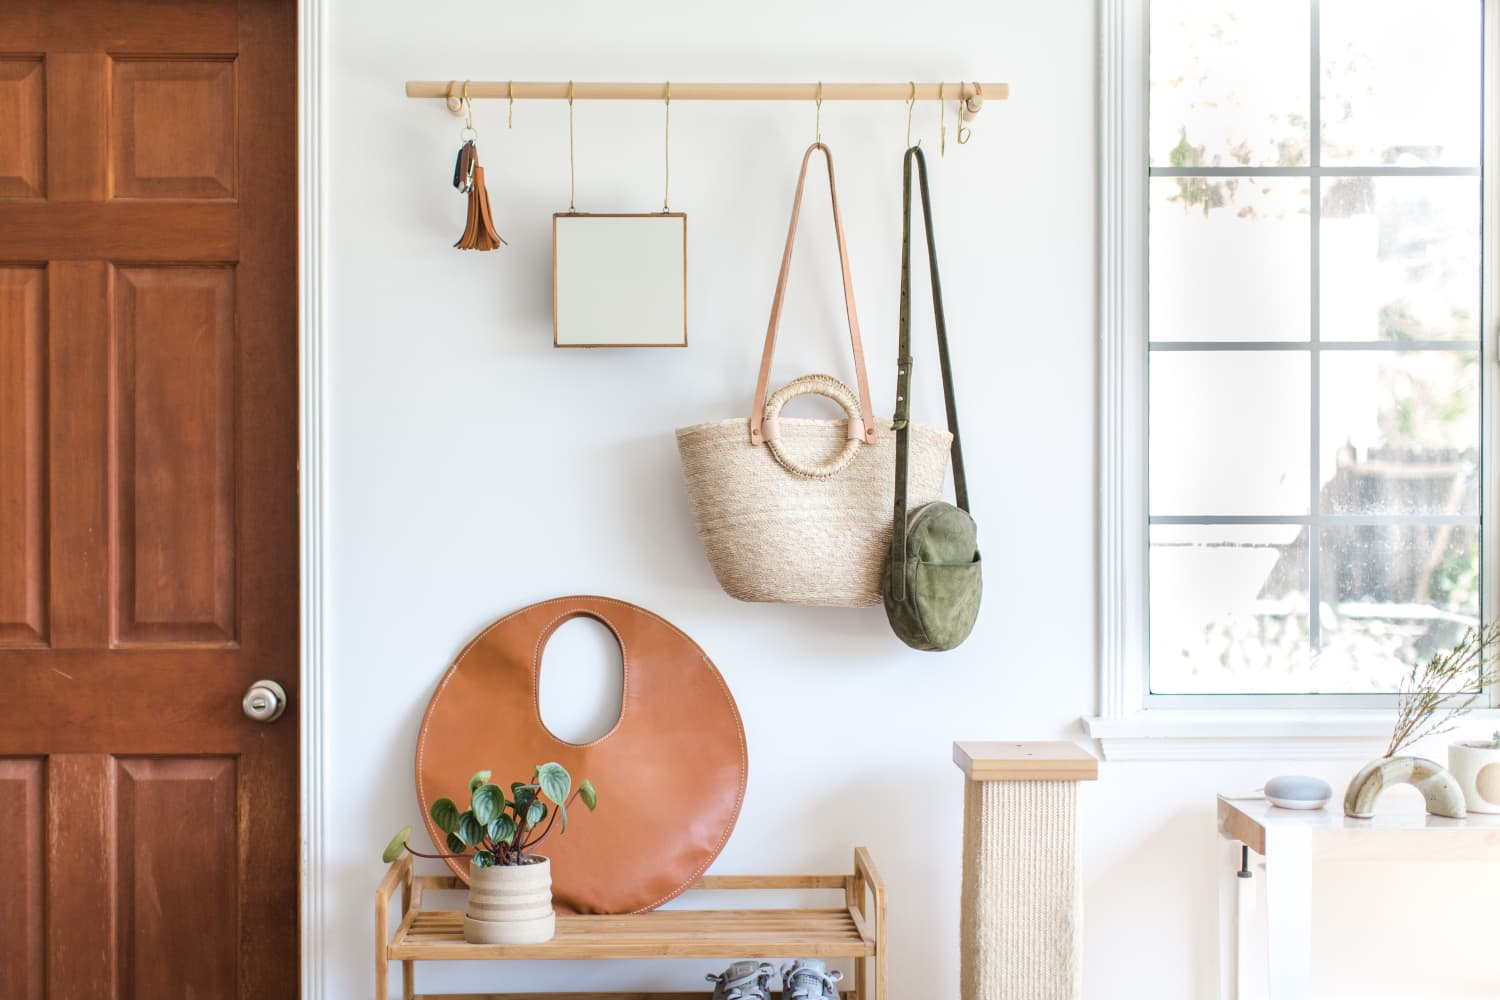 A Simple Daily Habit That Anyone Can Adopt to Keep Their Home More Organized, Around the Clock